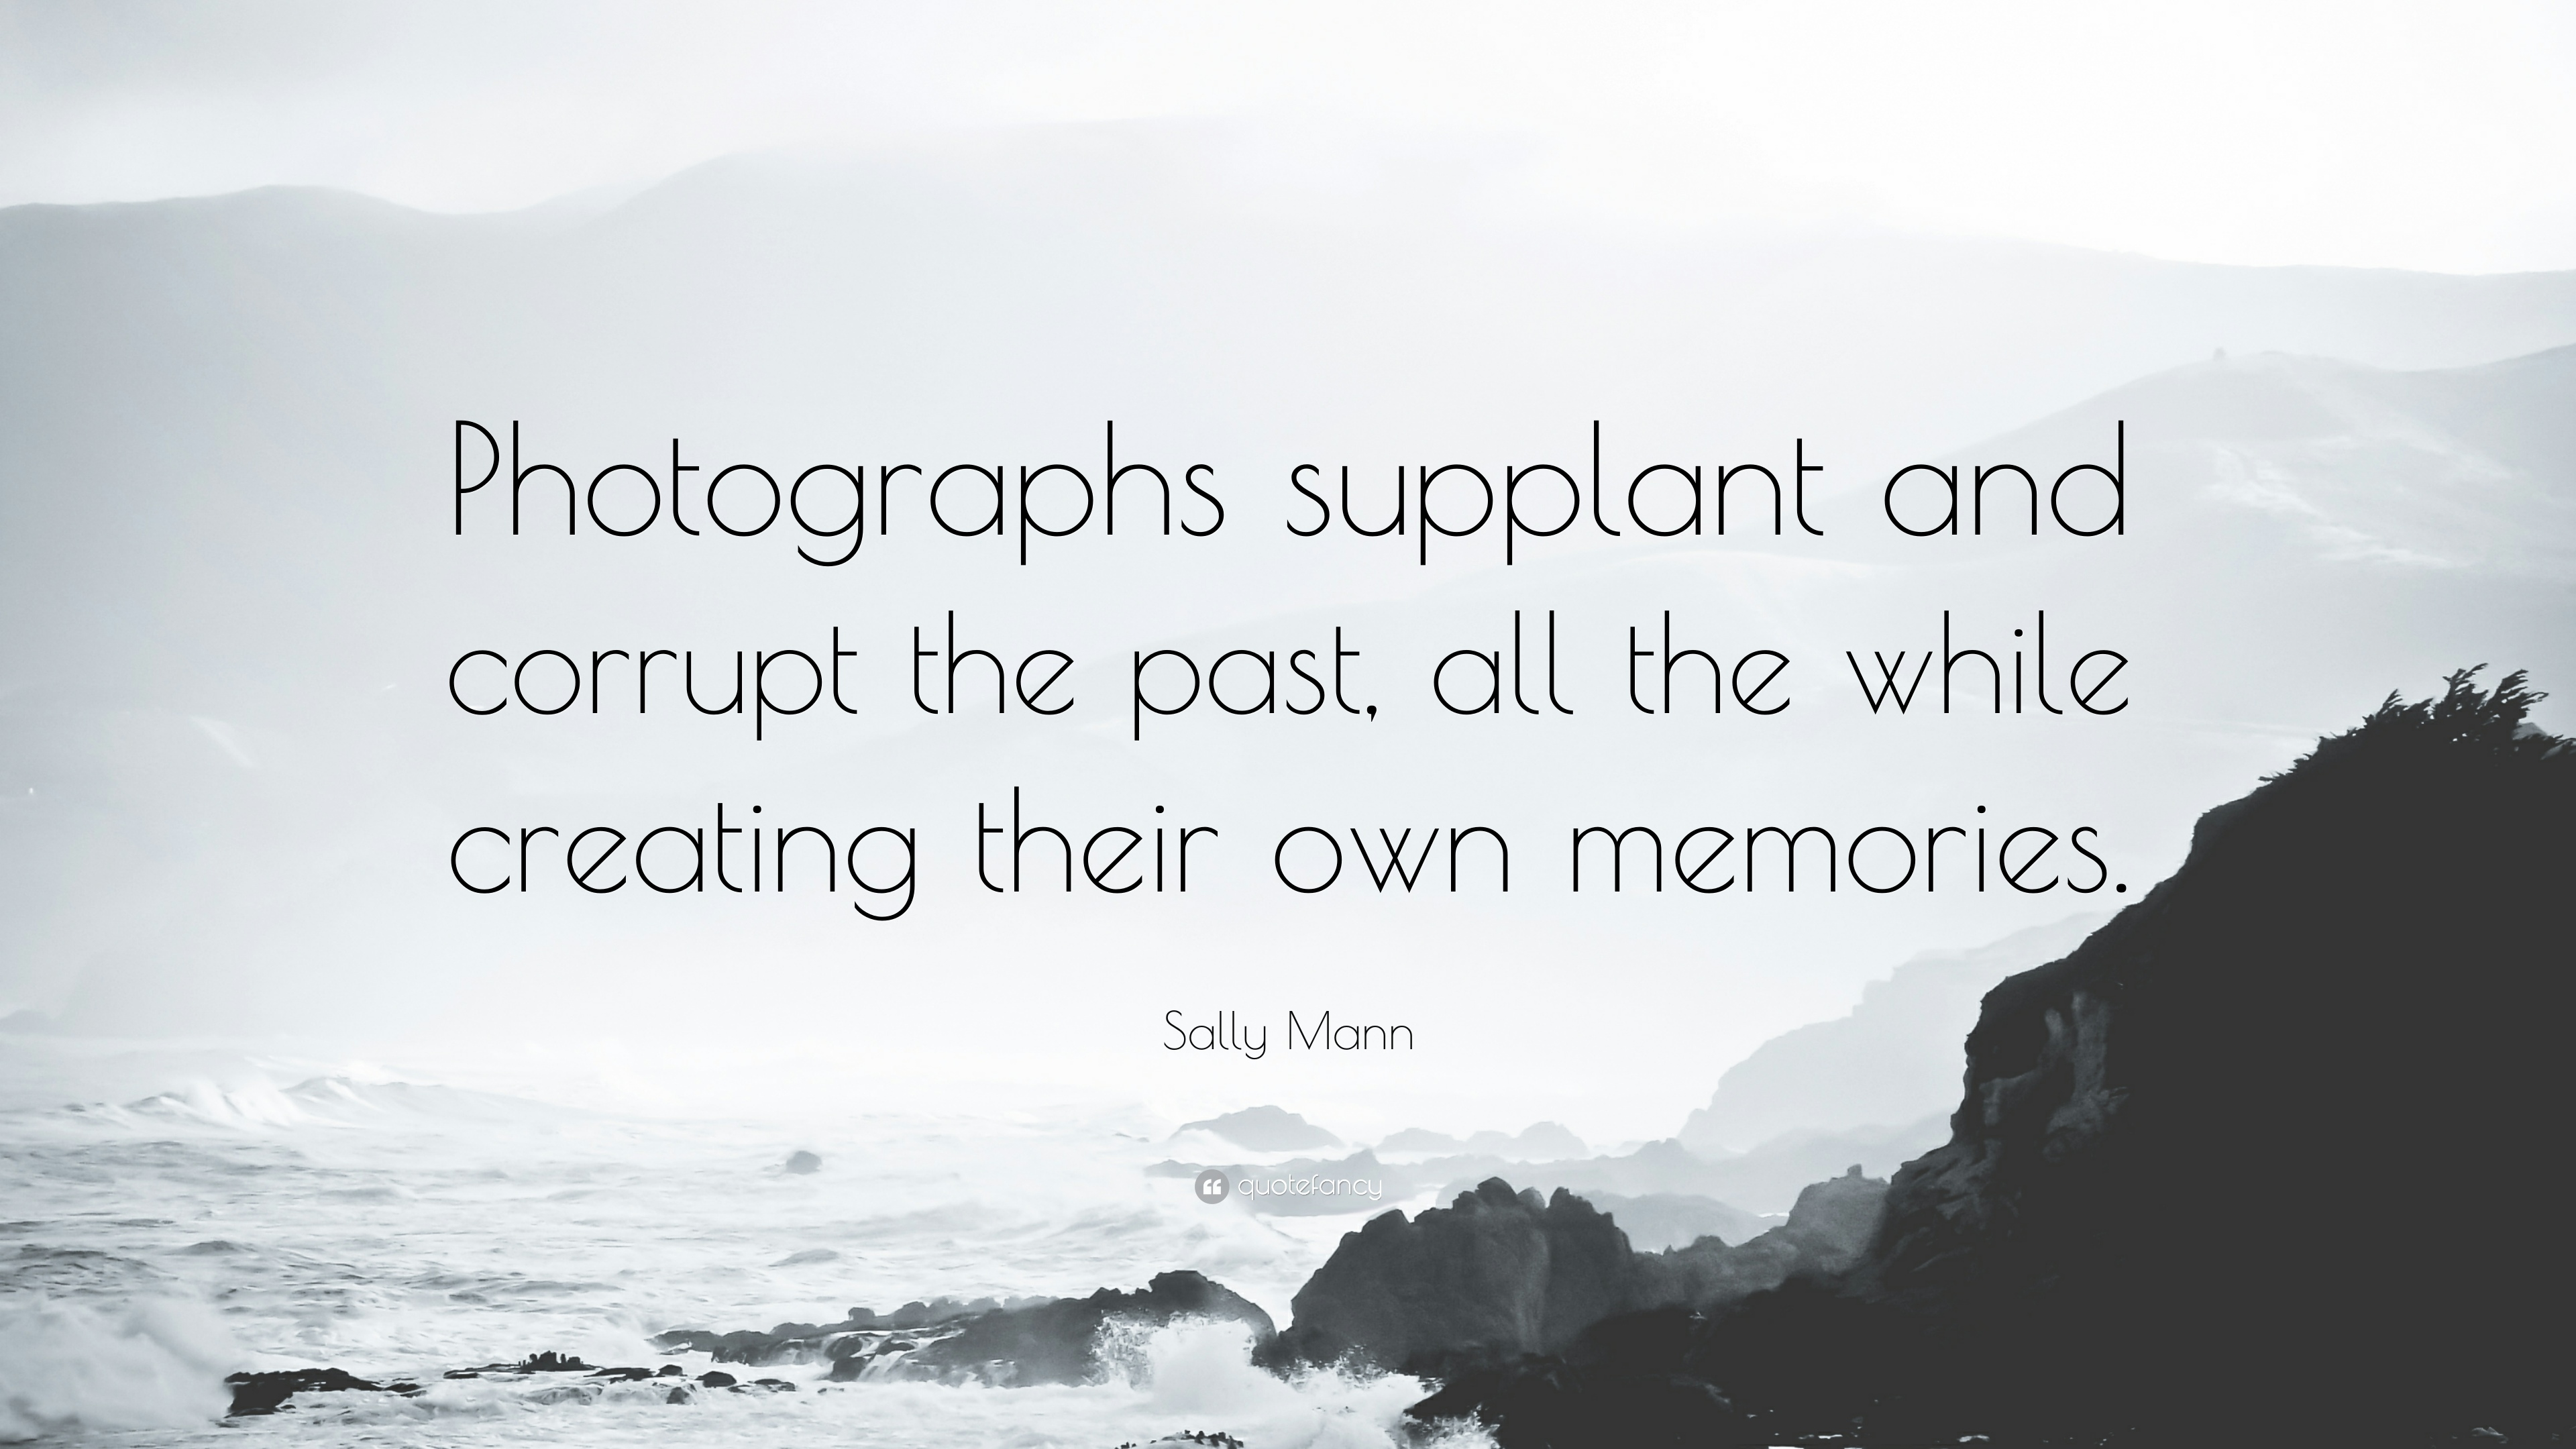 Sally Mann Quote Photographs Supplant And Corrupt The Past All While Creating